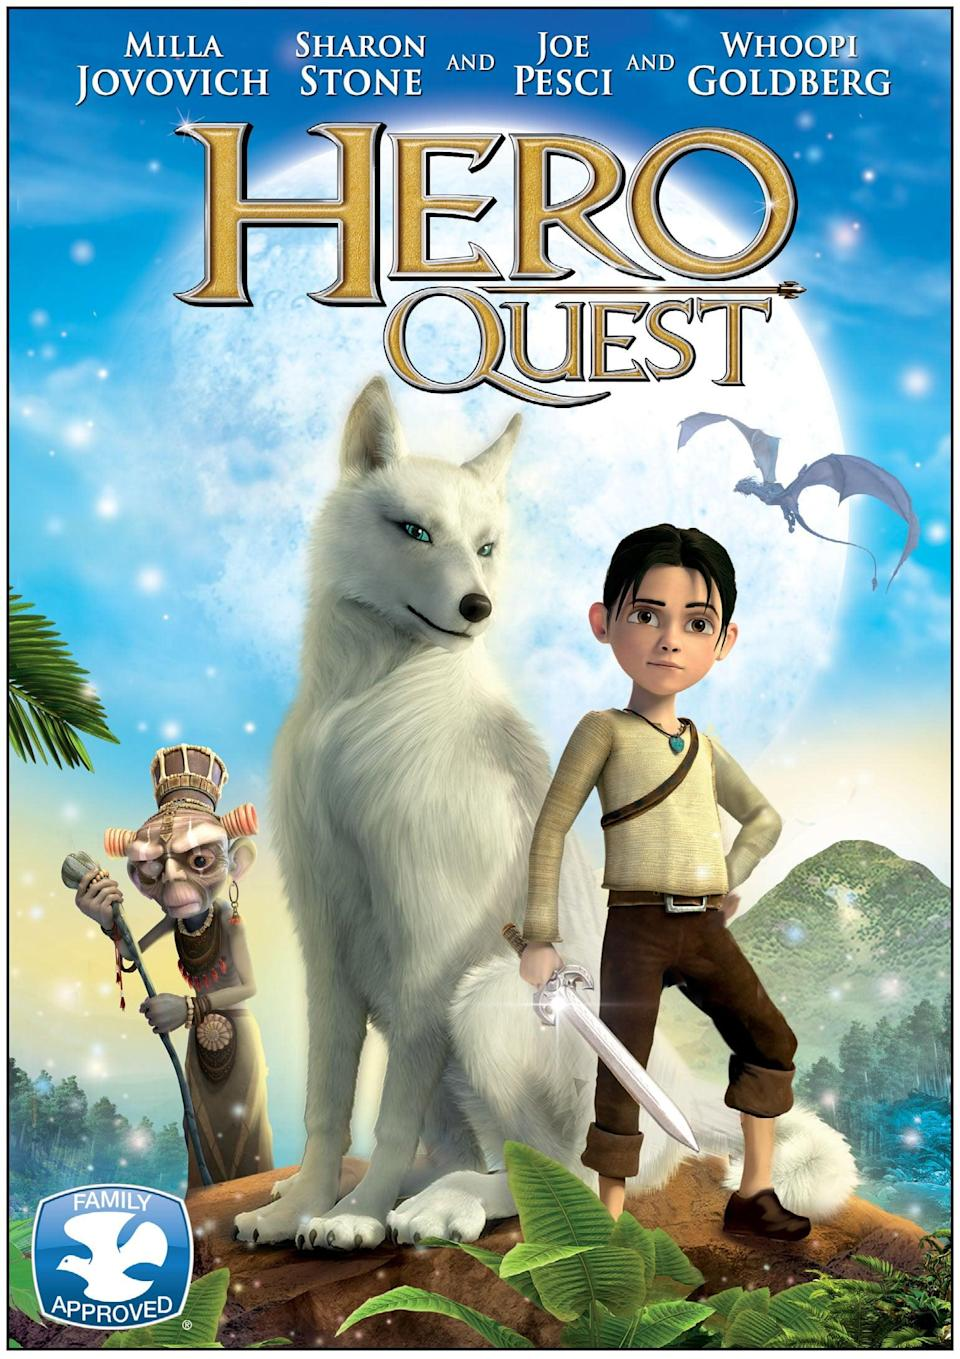 "<p><strong>Tubi's Description:</strong> ""When his village is threatened by hyenas, a courageous boy embarks on a quest to find the legendary wolves that once protected his people.""</p> <p><a href=""https://tubitv.com/movies/468344/hero-quest"" class=""link rapid-noclick-resp"" rel=""nofollow noopener"" target=""_blank"" data-ylk=""slk:Watch Hero Quest on Tubi now!"">Watch <strong>Hero Quest</strong> on Tubi now!</a></p>"